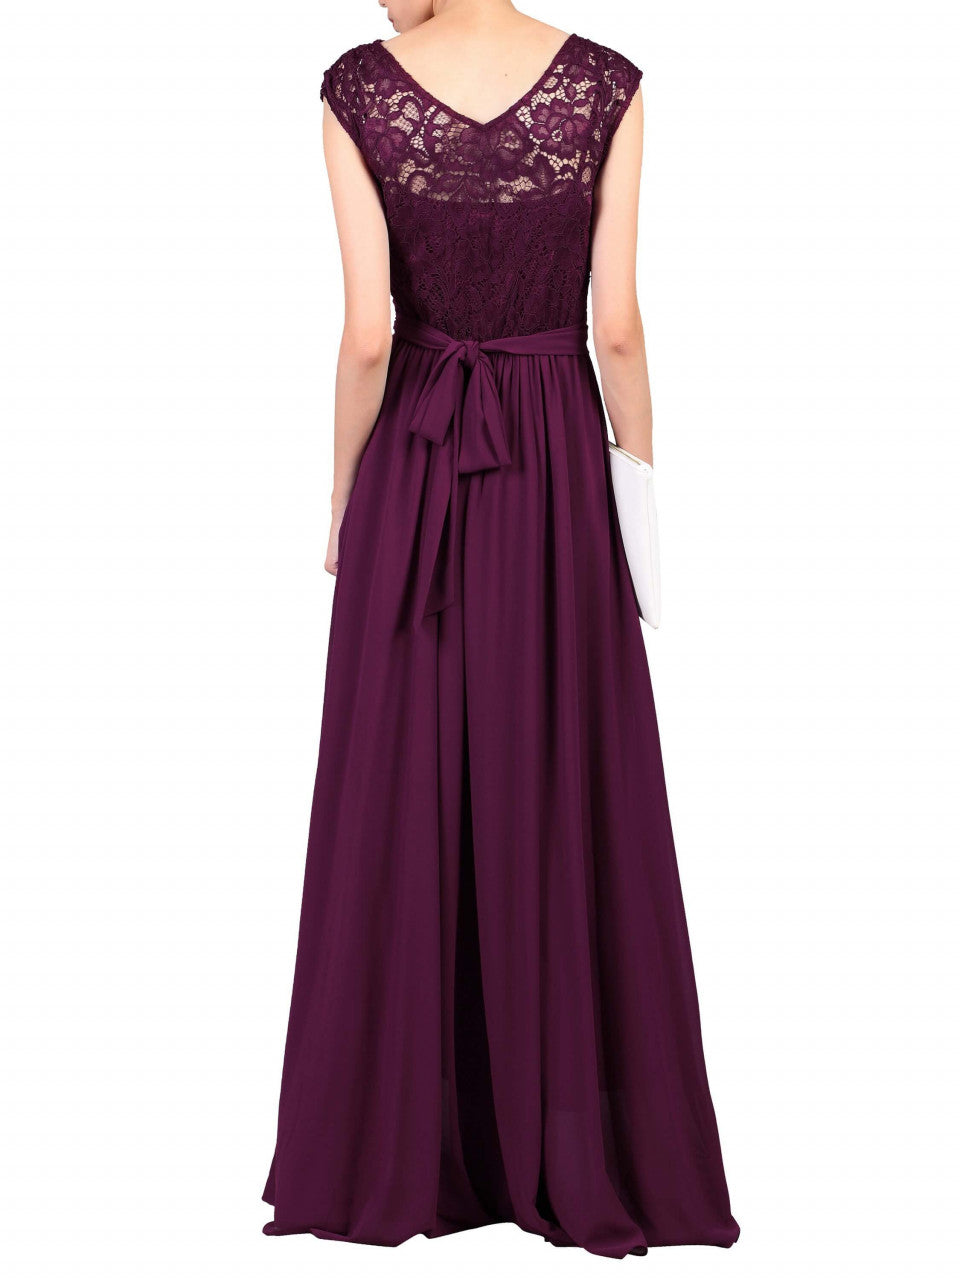 ac4779c04860 ... Load image into Gallery viewer, Jolie Moi Lace Bodice Pleated Maxi Dress,  Burgundy ...